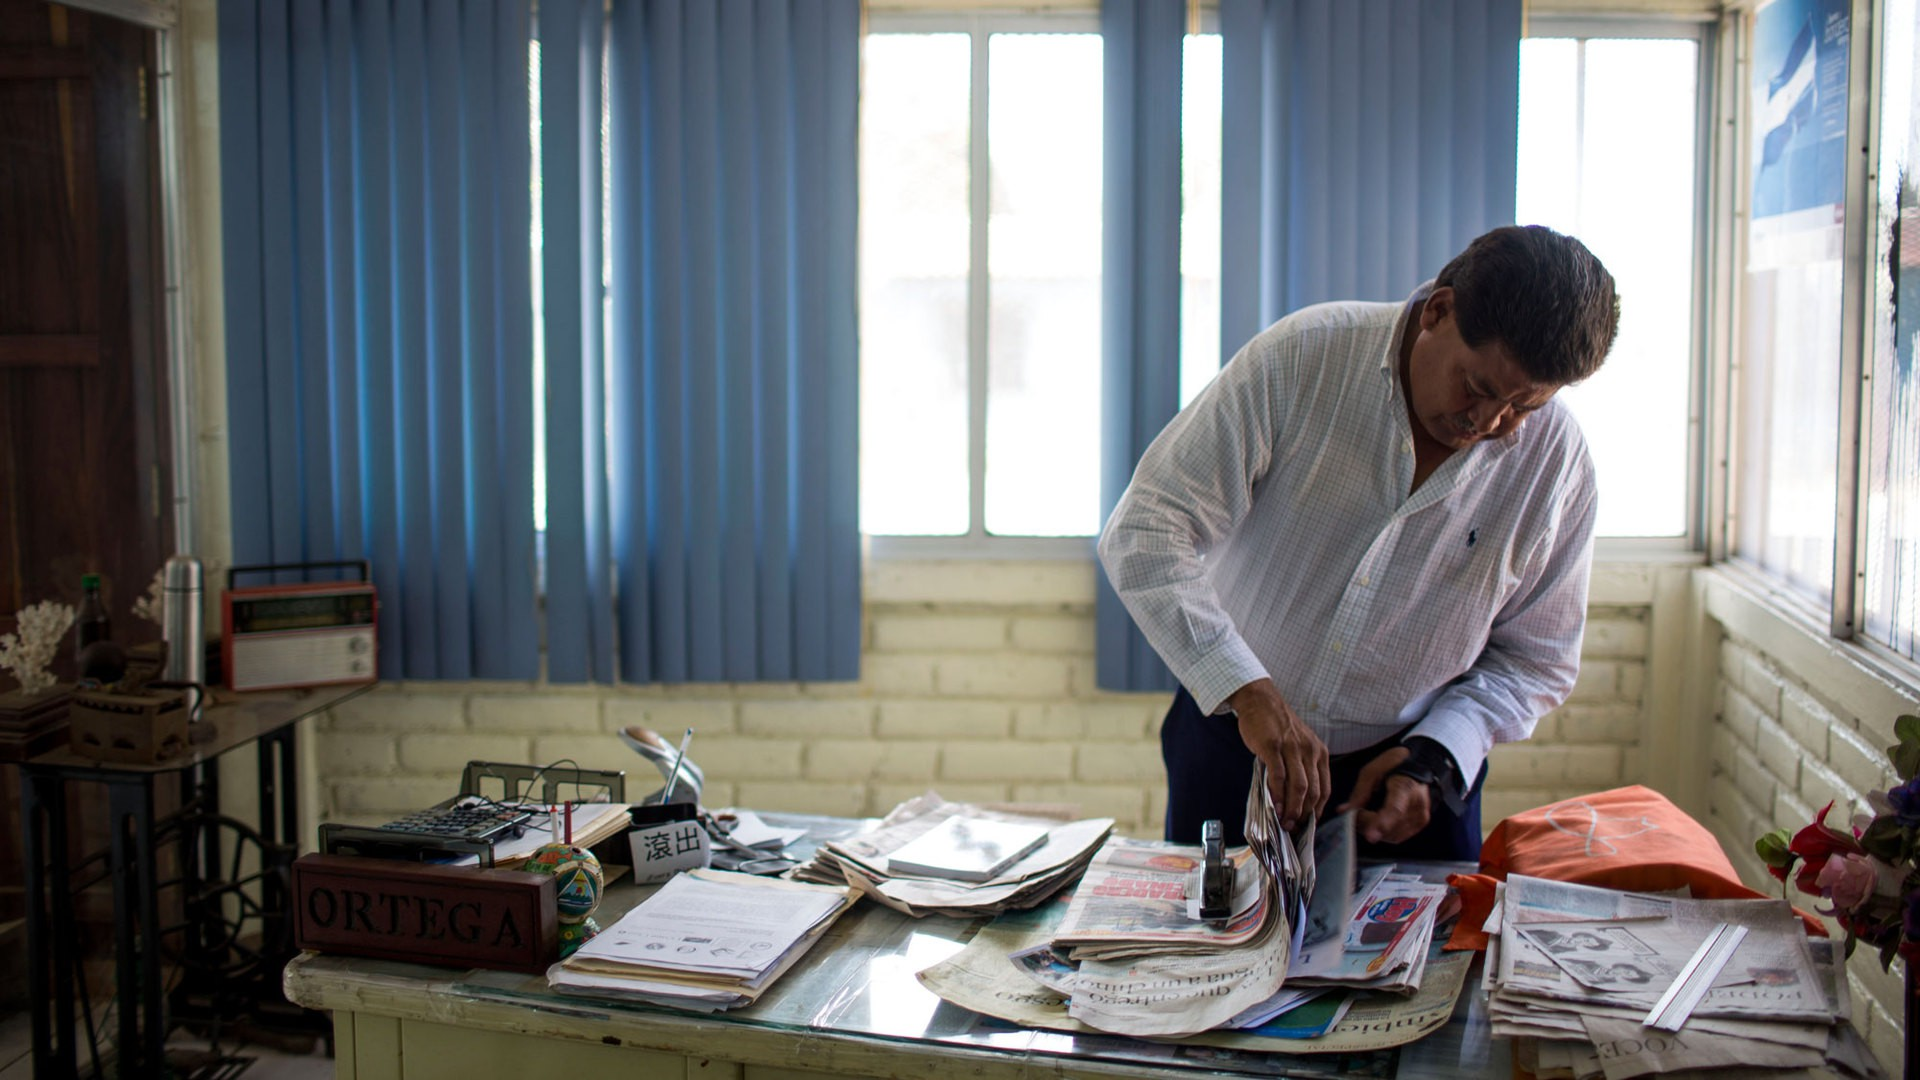 Ortega sifts through newspaper clippings in his office at FUNDEMUR. (Photo by Dominic Valente)